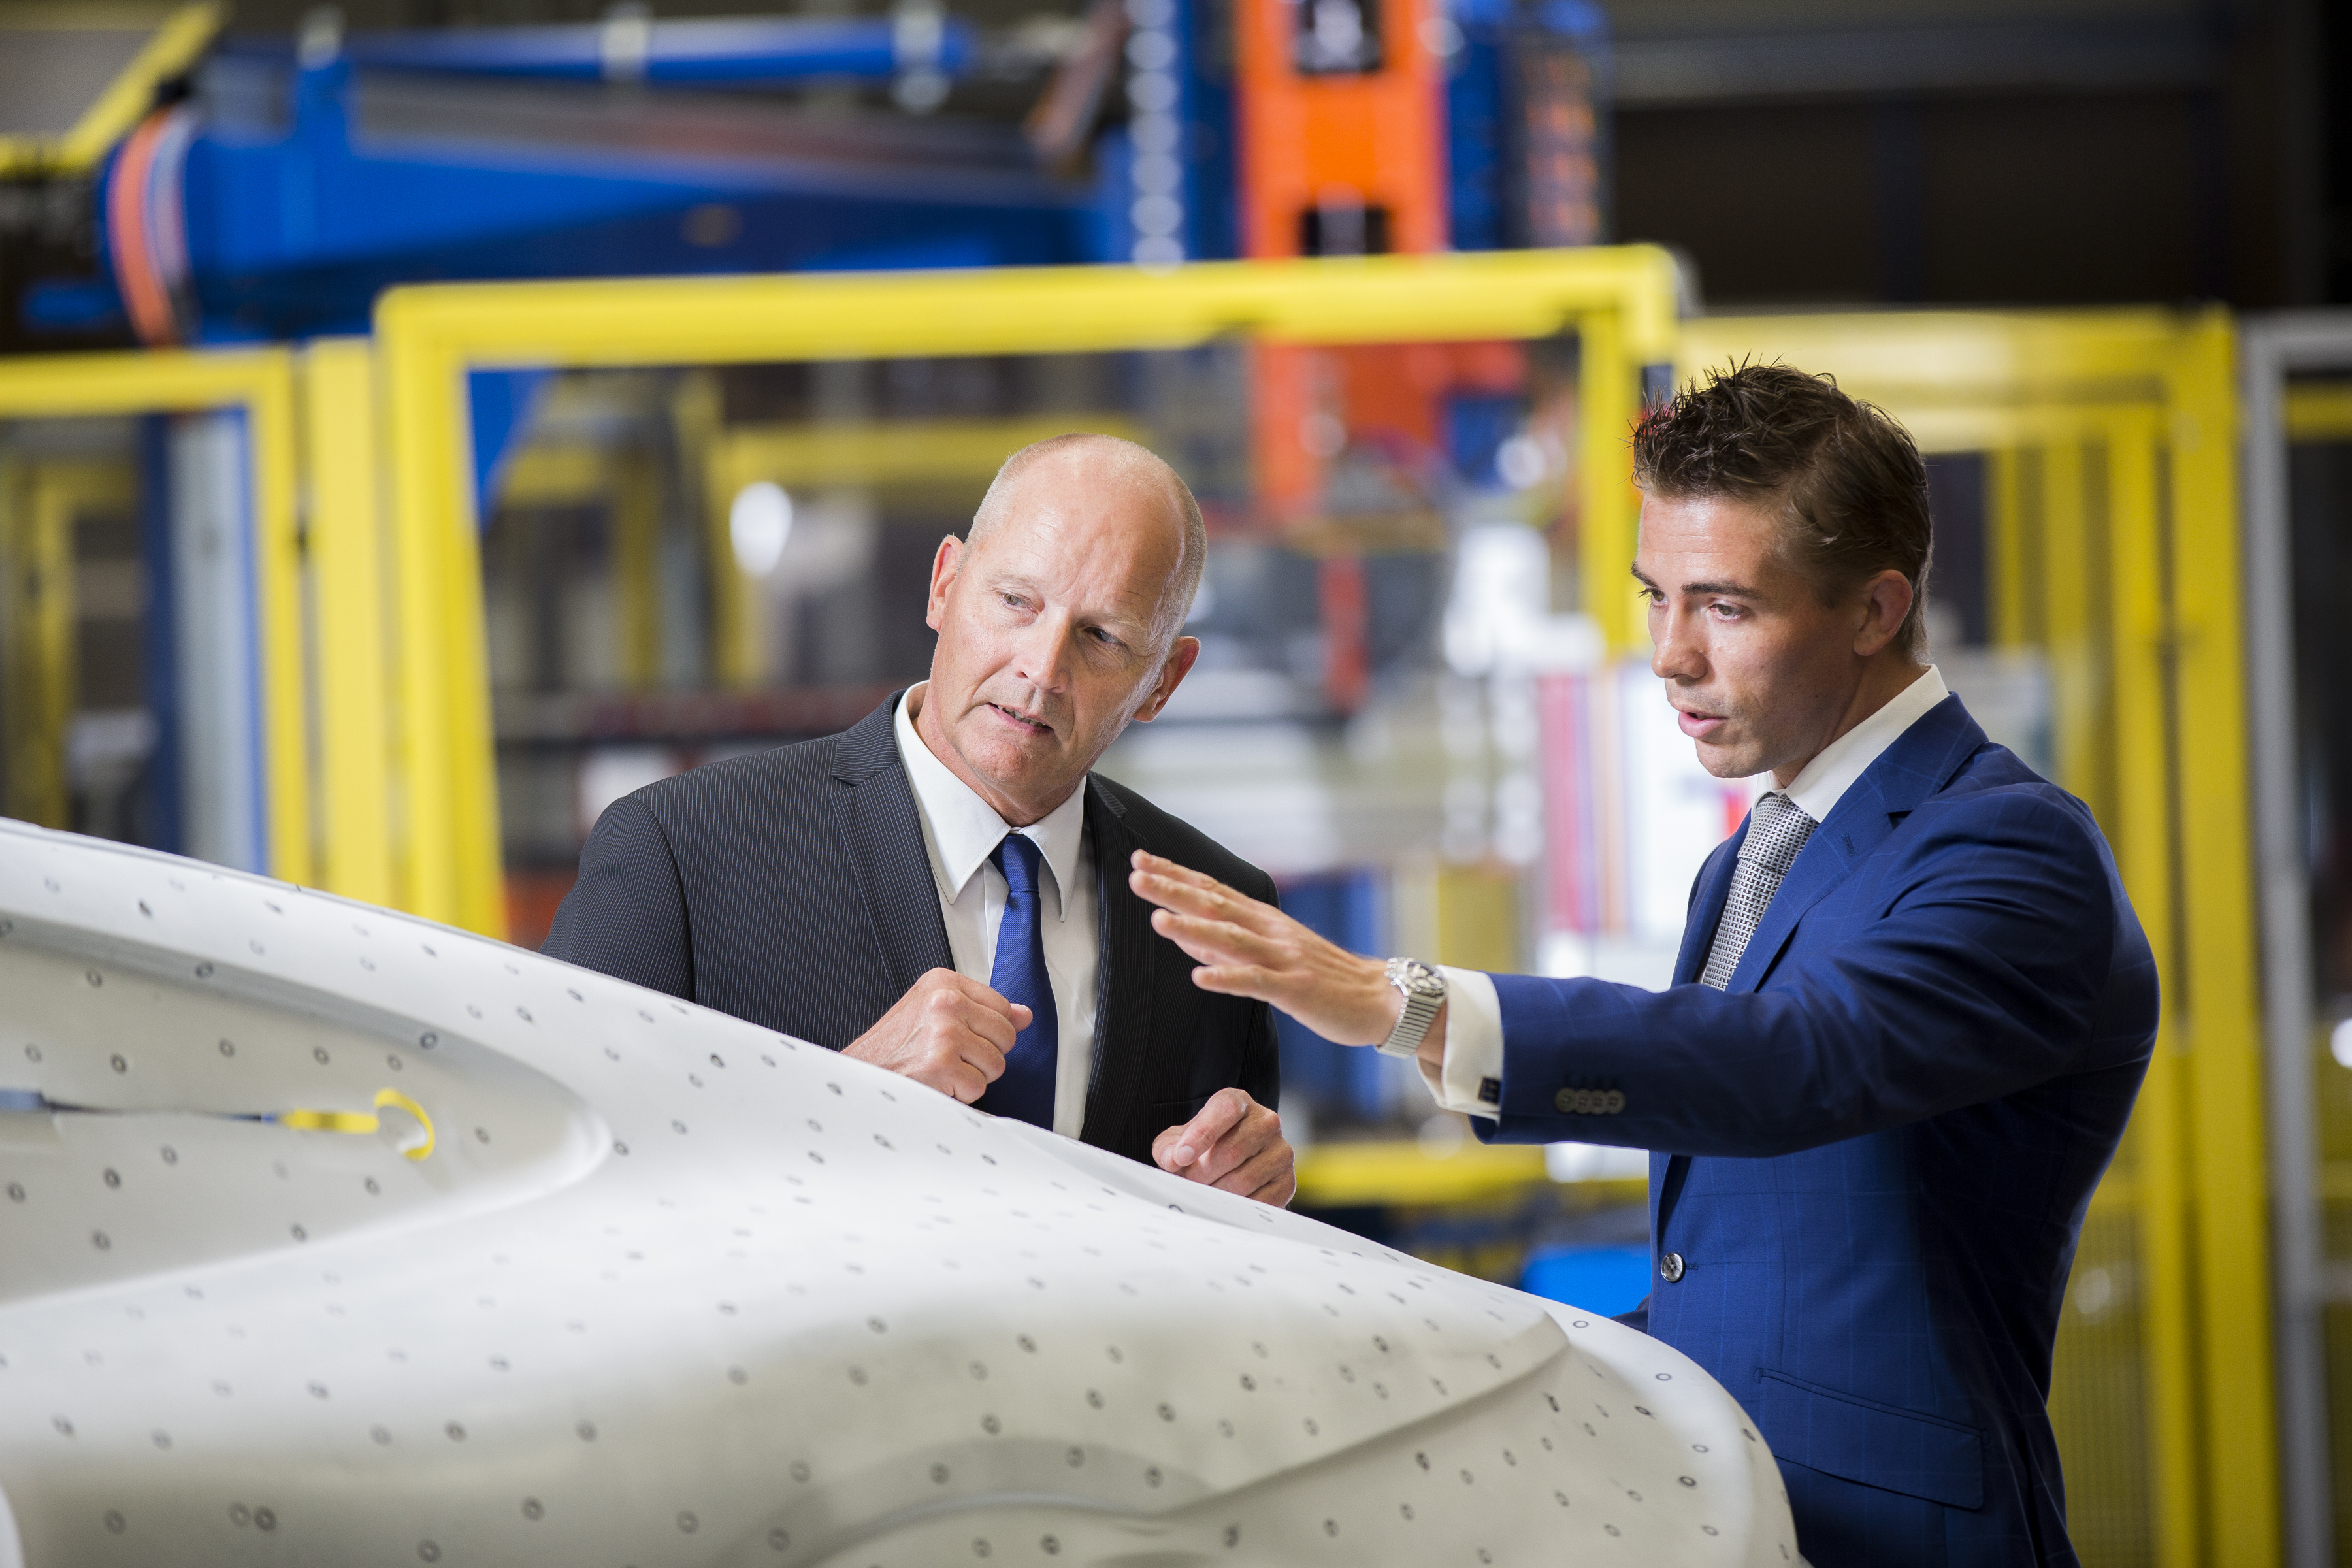 Two business colleagues looking at a car panel, deep in discussion